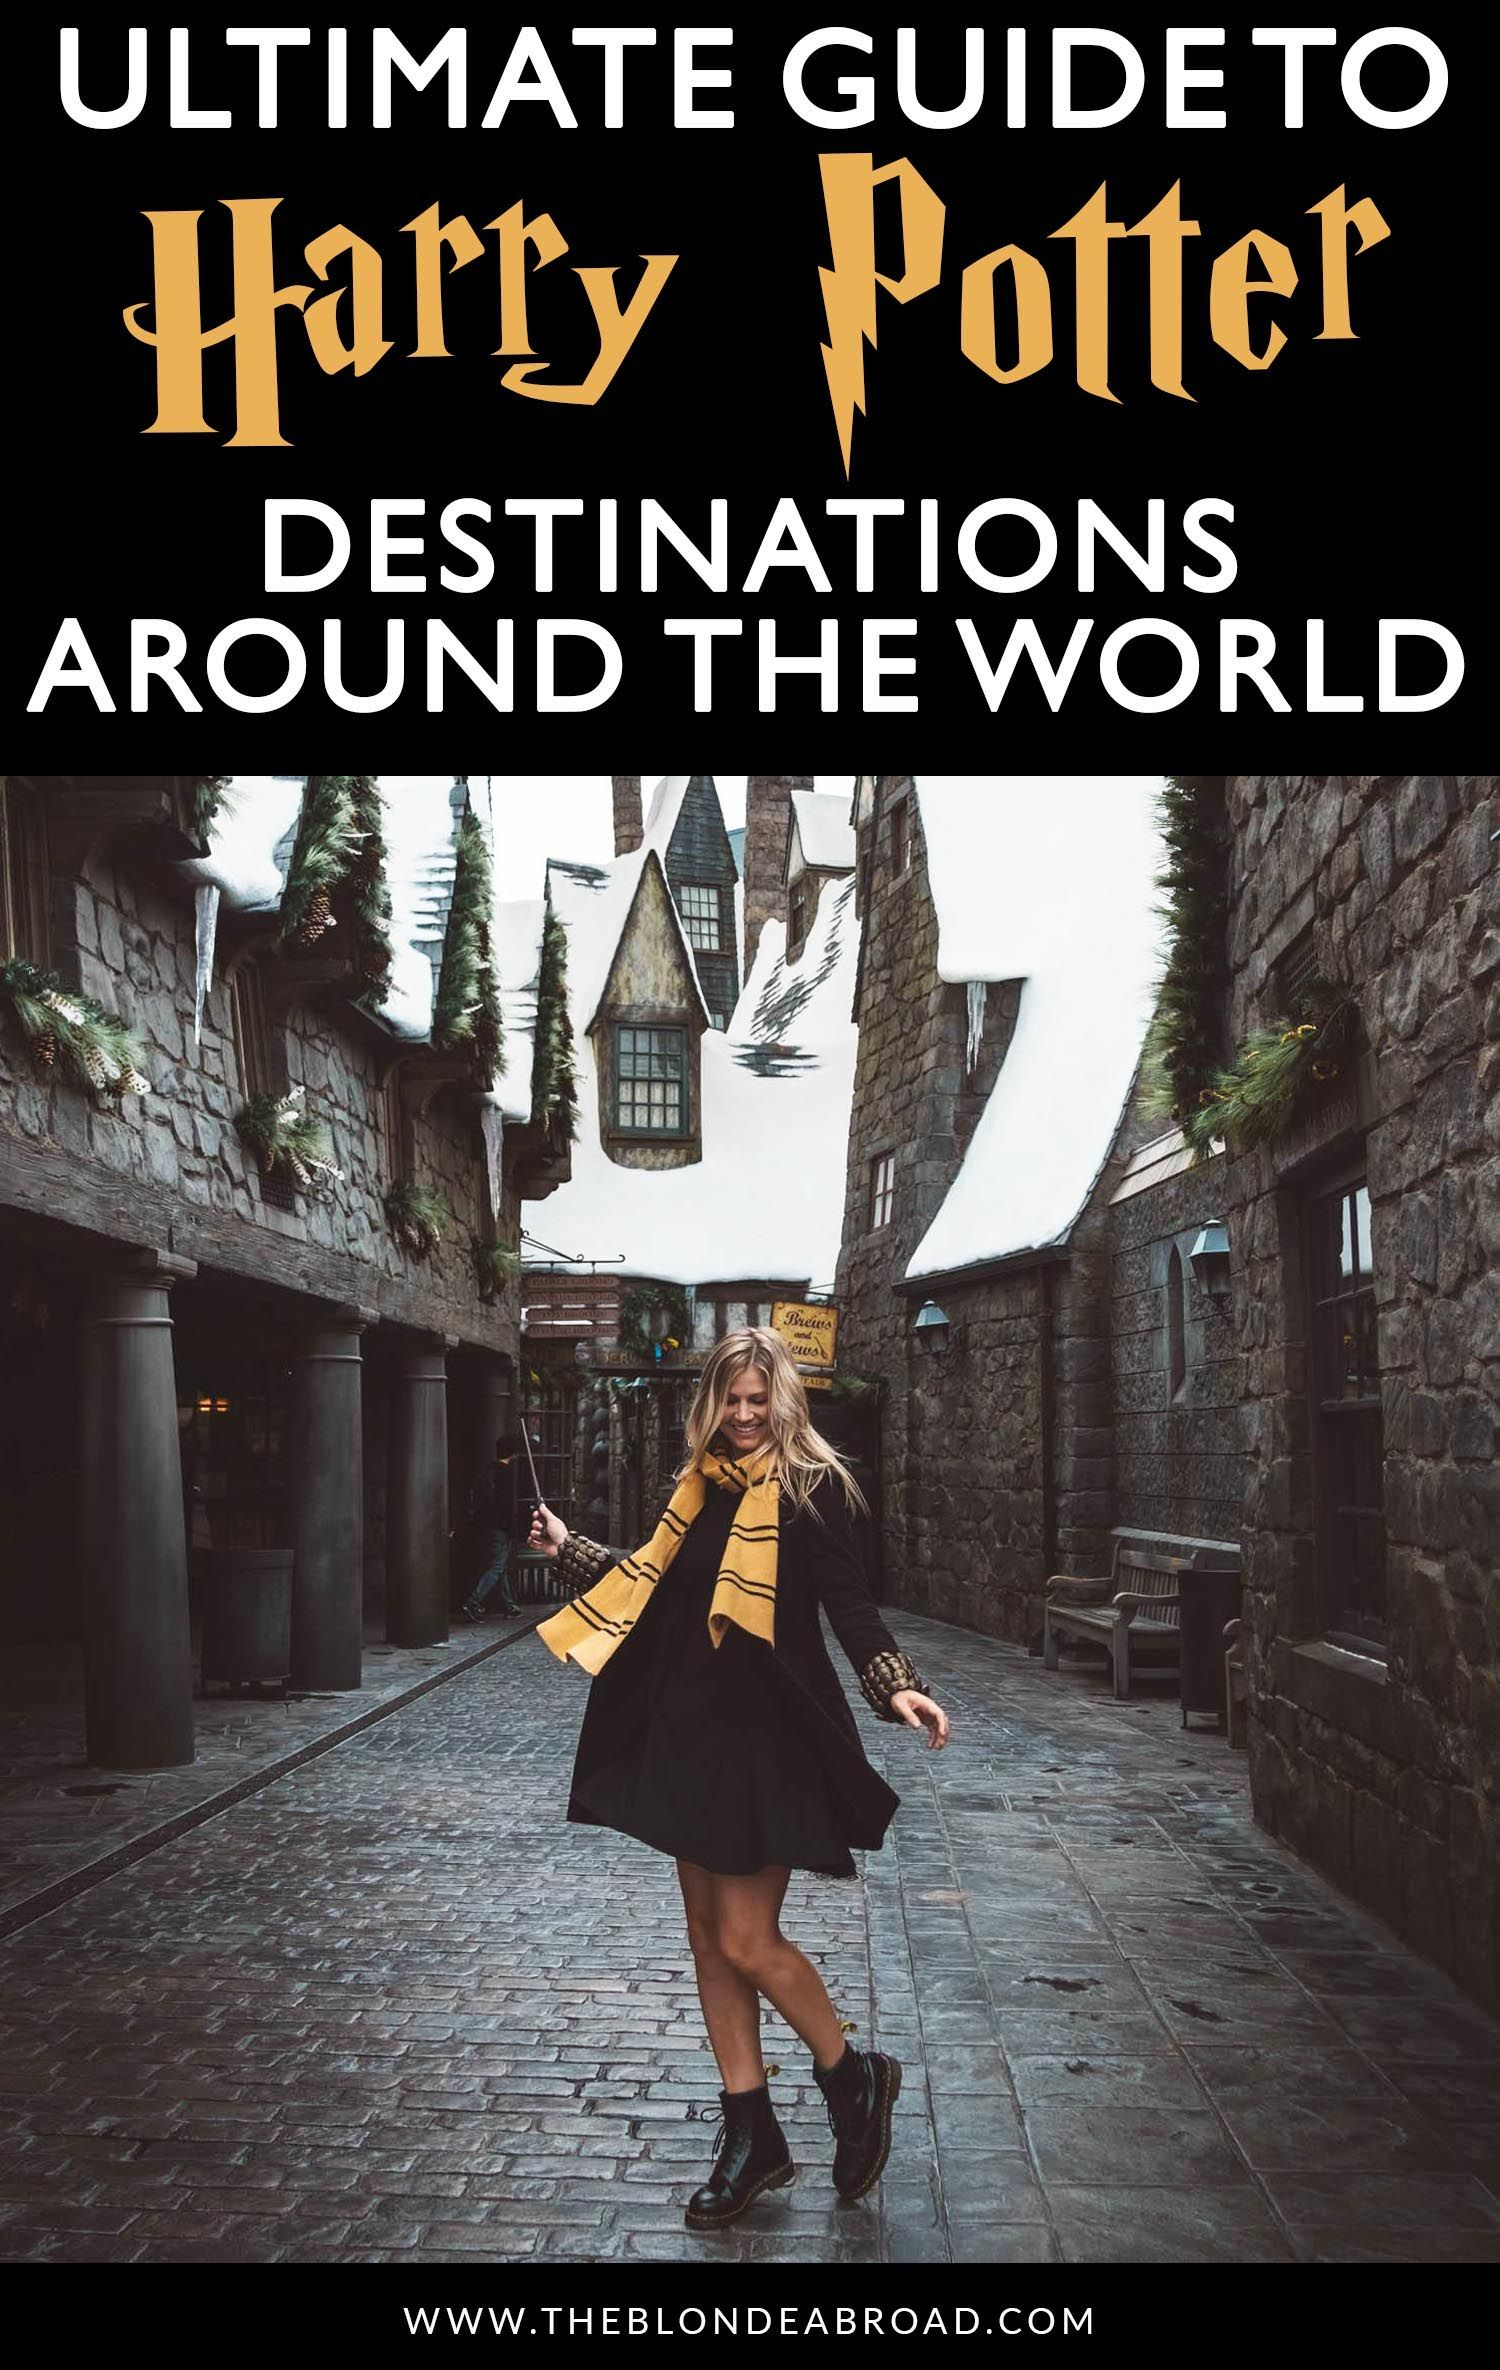 The Ultimate Guide To Harry Potter Destinations Around The World The Blonde Abroad Harry Potter Travel Harry Potter Locations Harry Potter Places